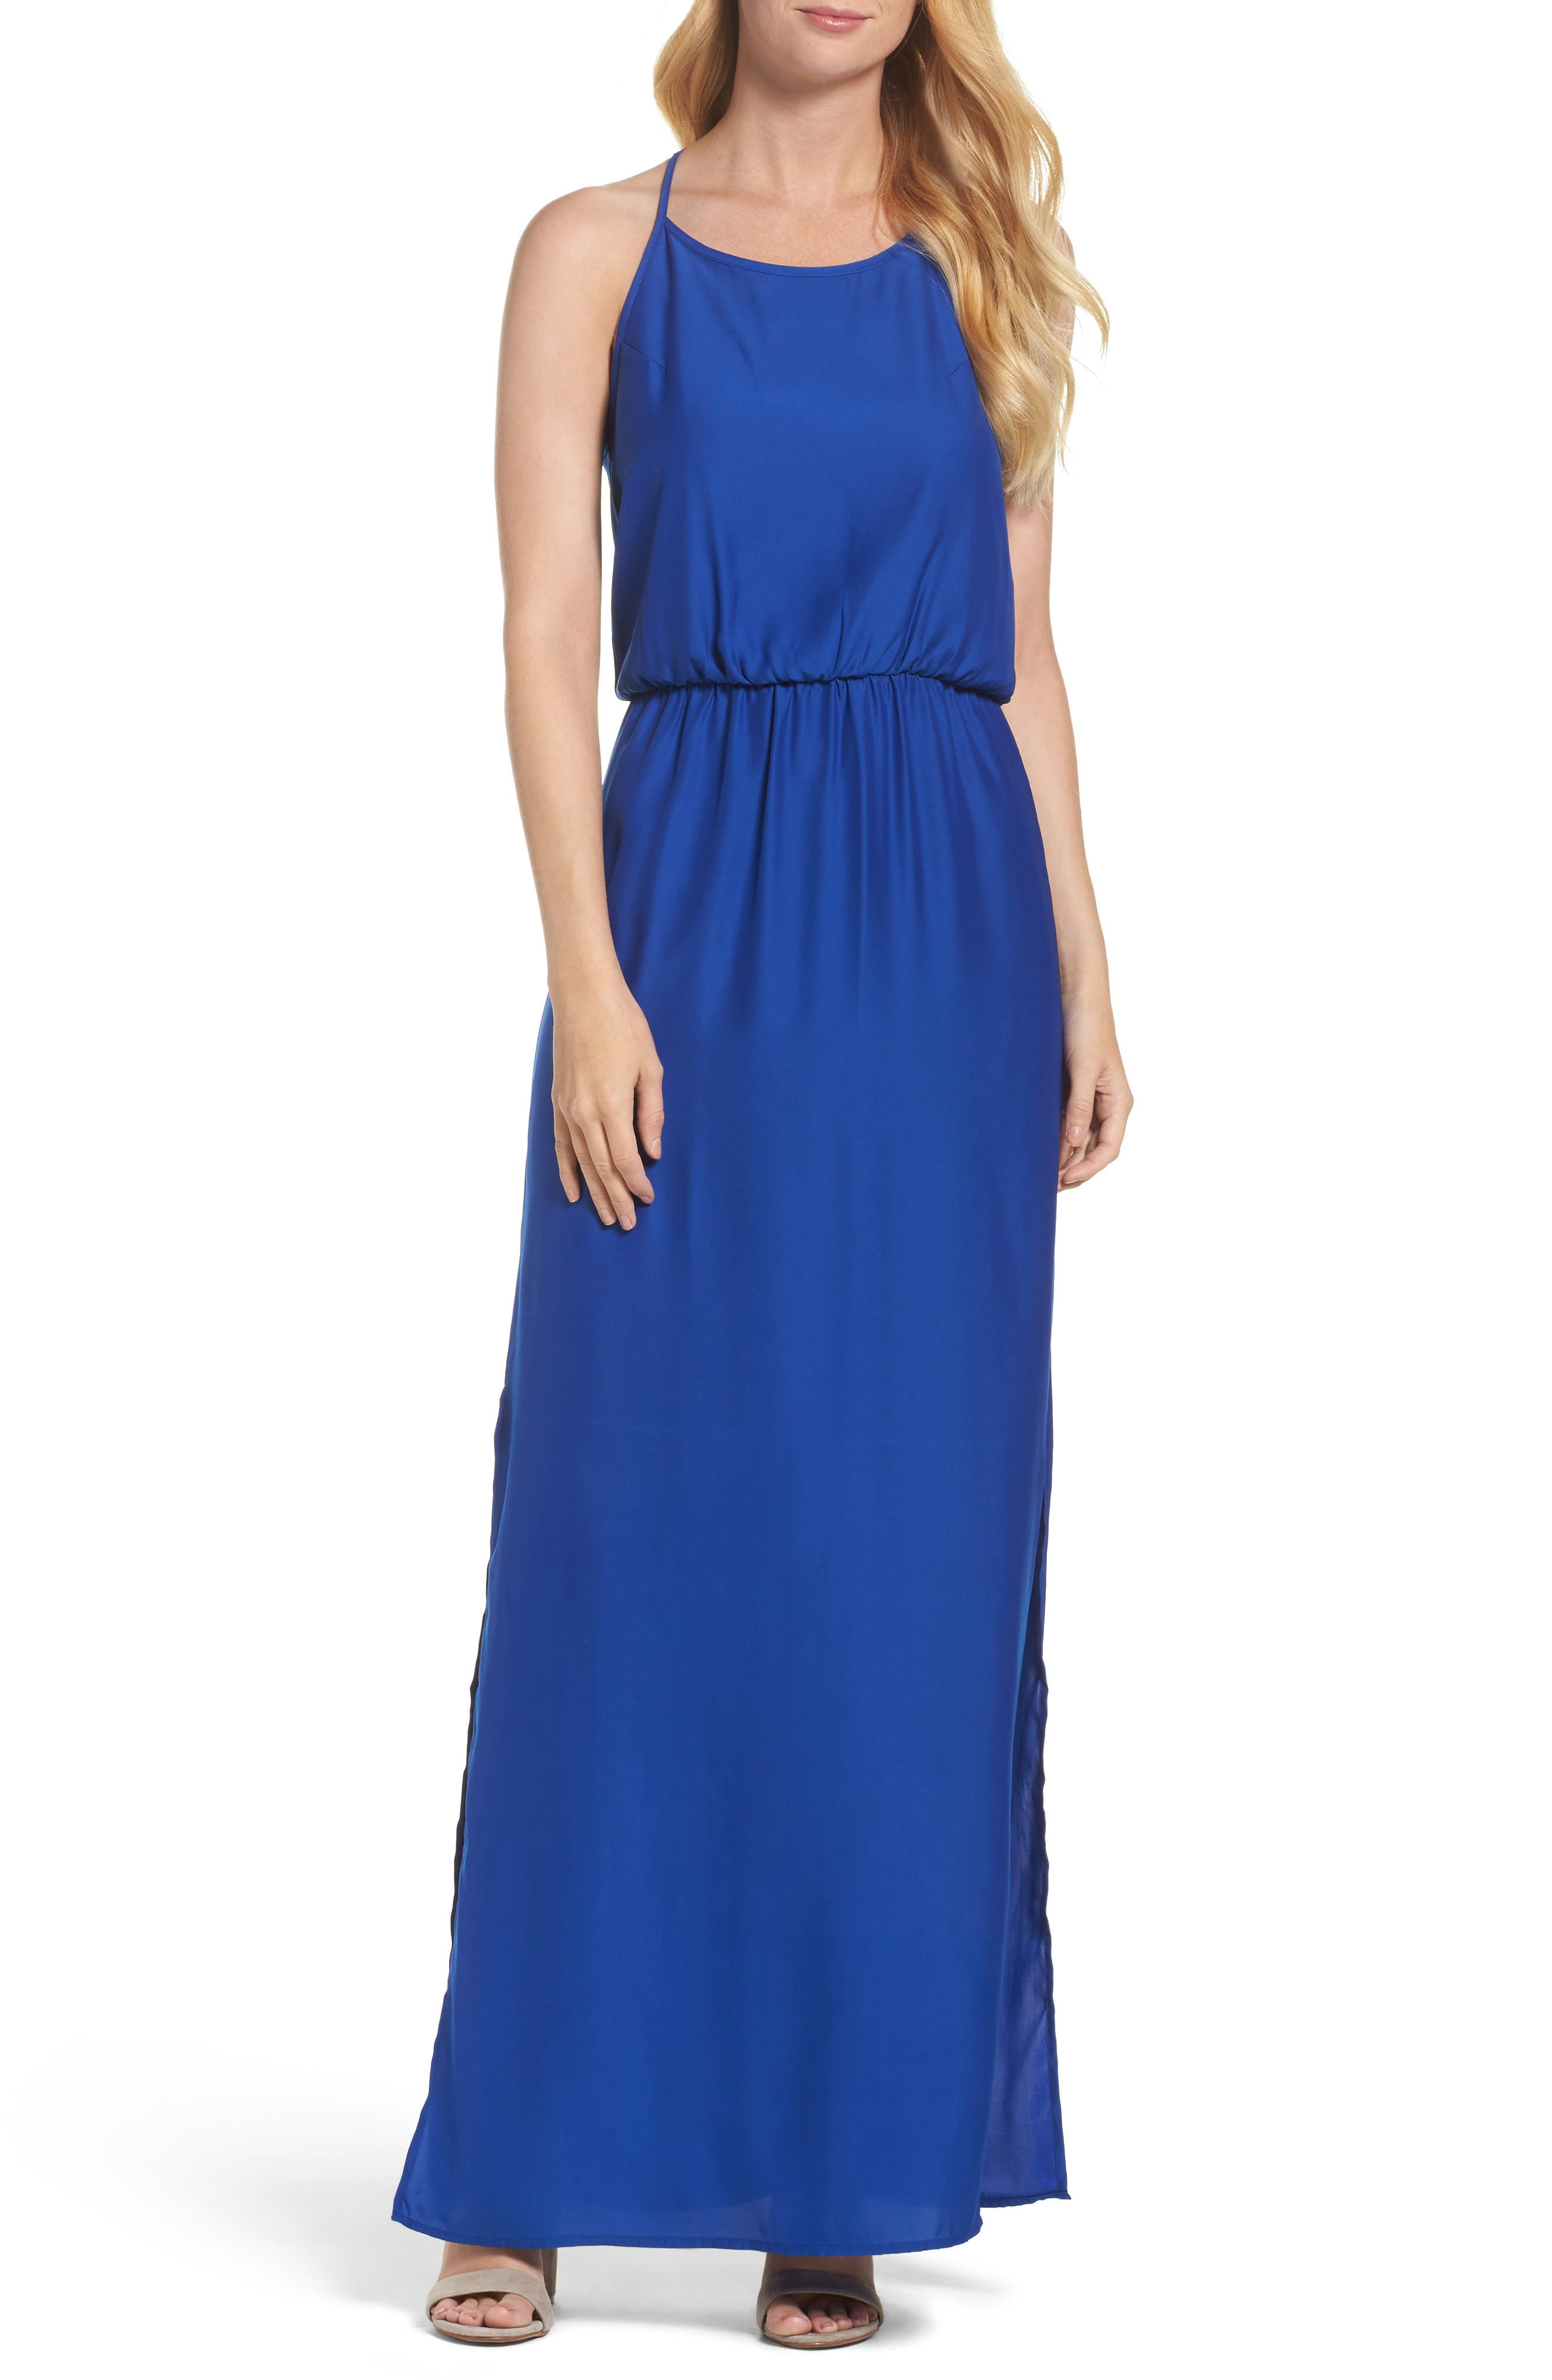 Felicity & Coco Maxi Dress (Regular & Petite) (Nordstrom Exclusive)